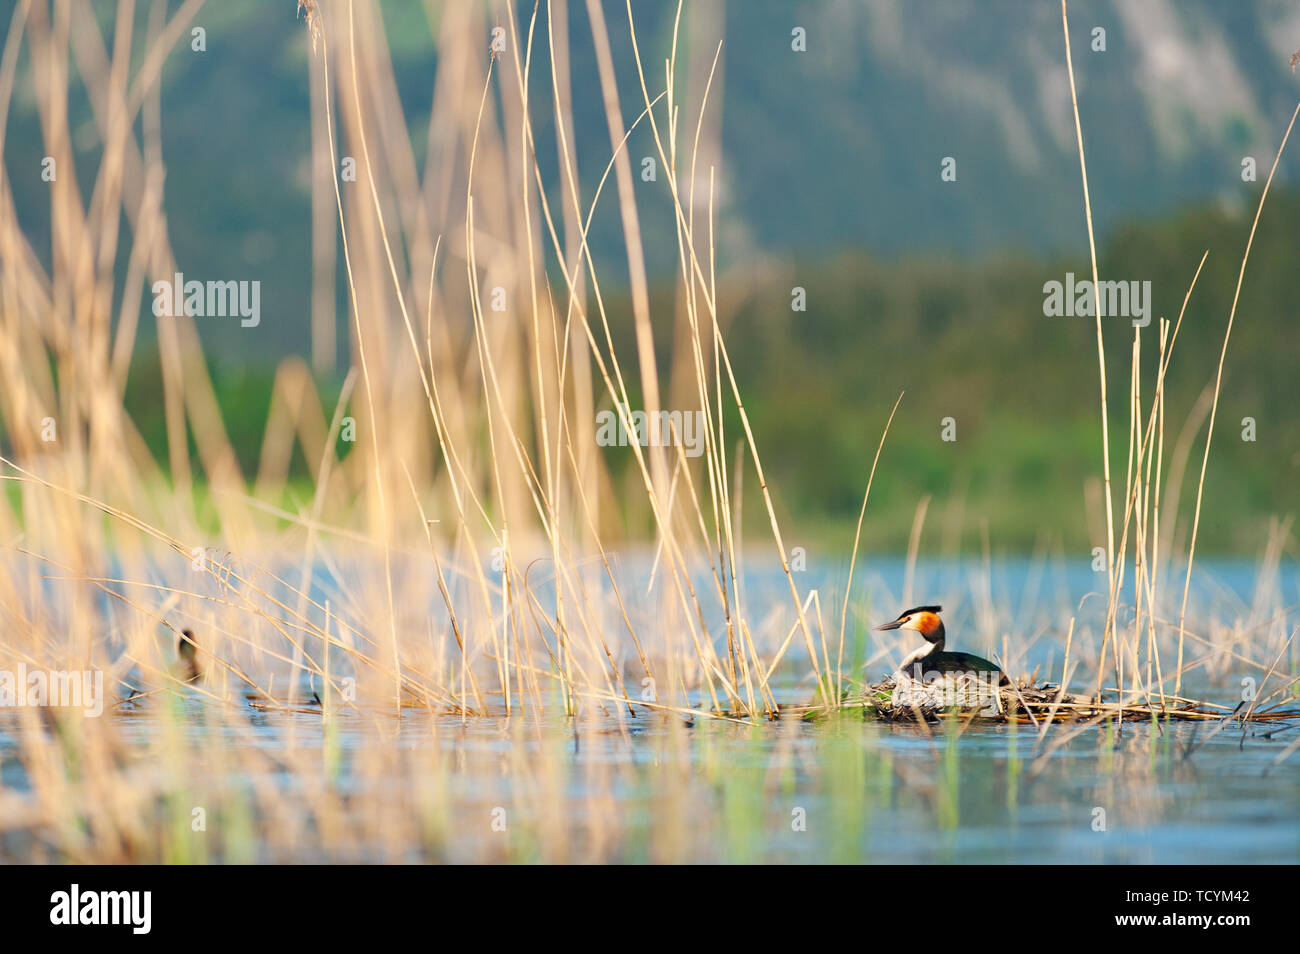 Great crested grebe sitting on eggs in nest. Podiceps cristatus. Wildlife photography with blurred mountains on background. - Stock Image